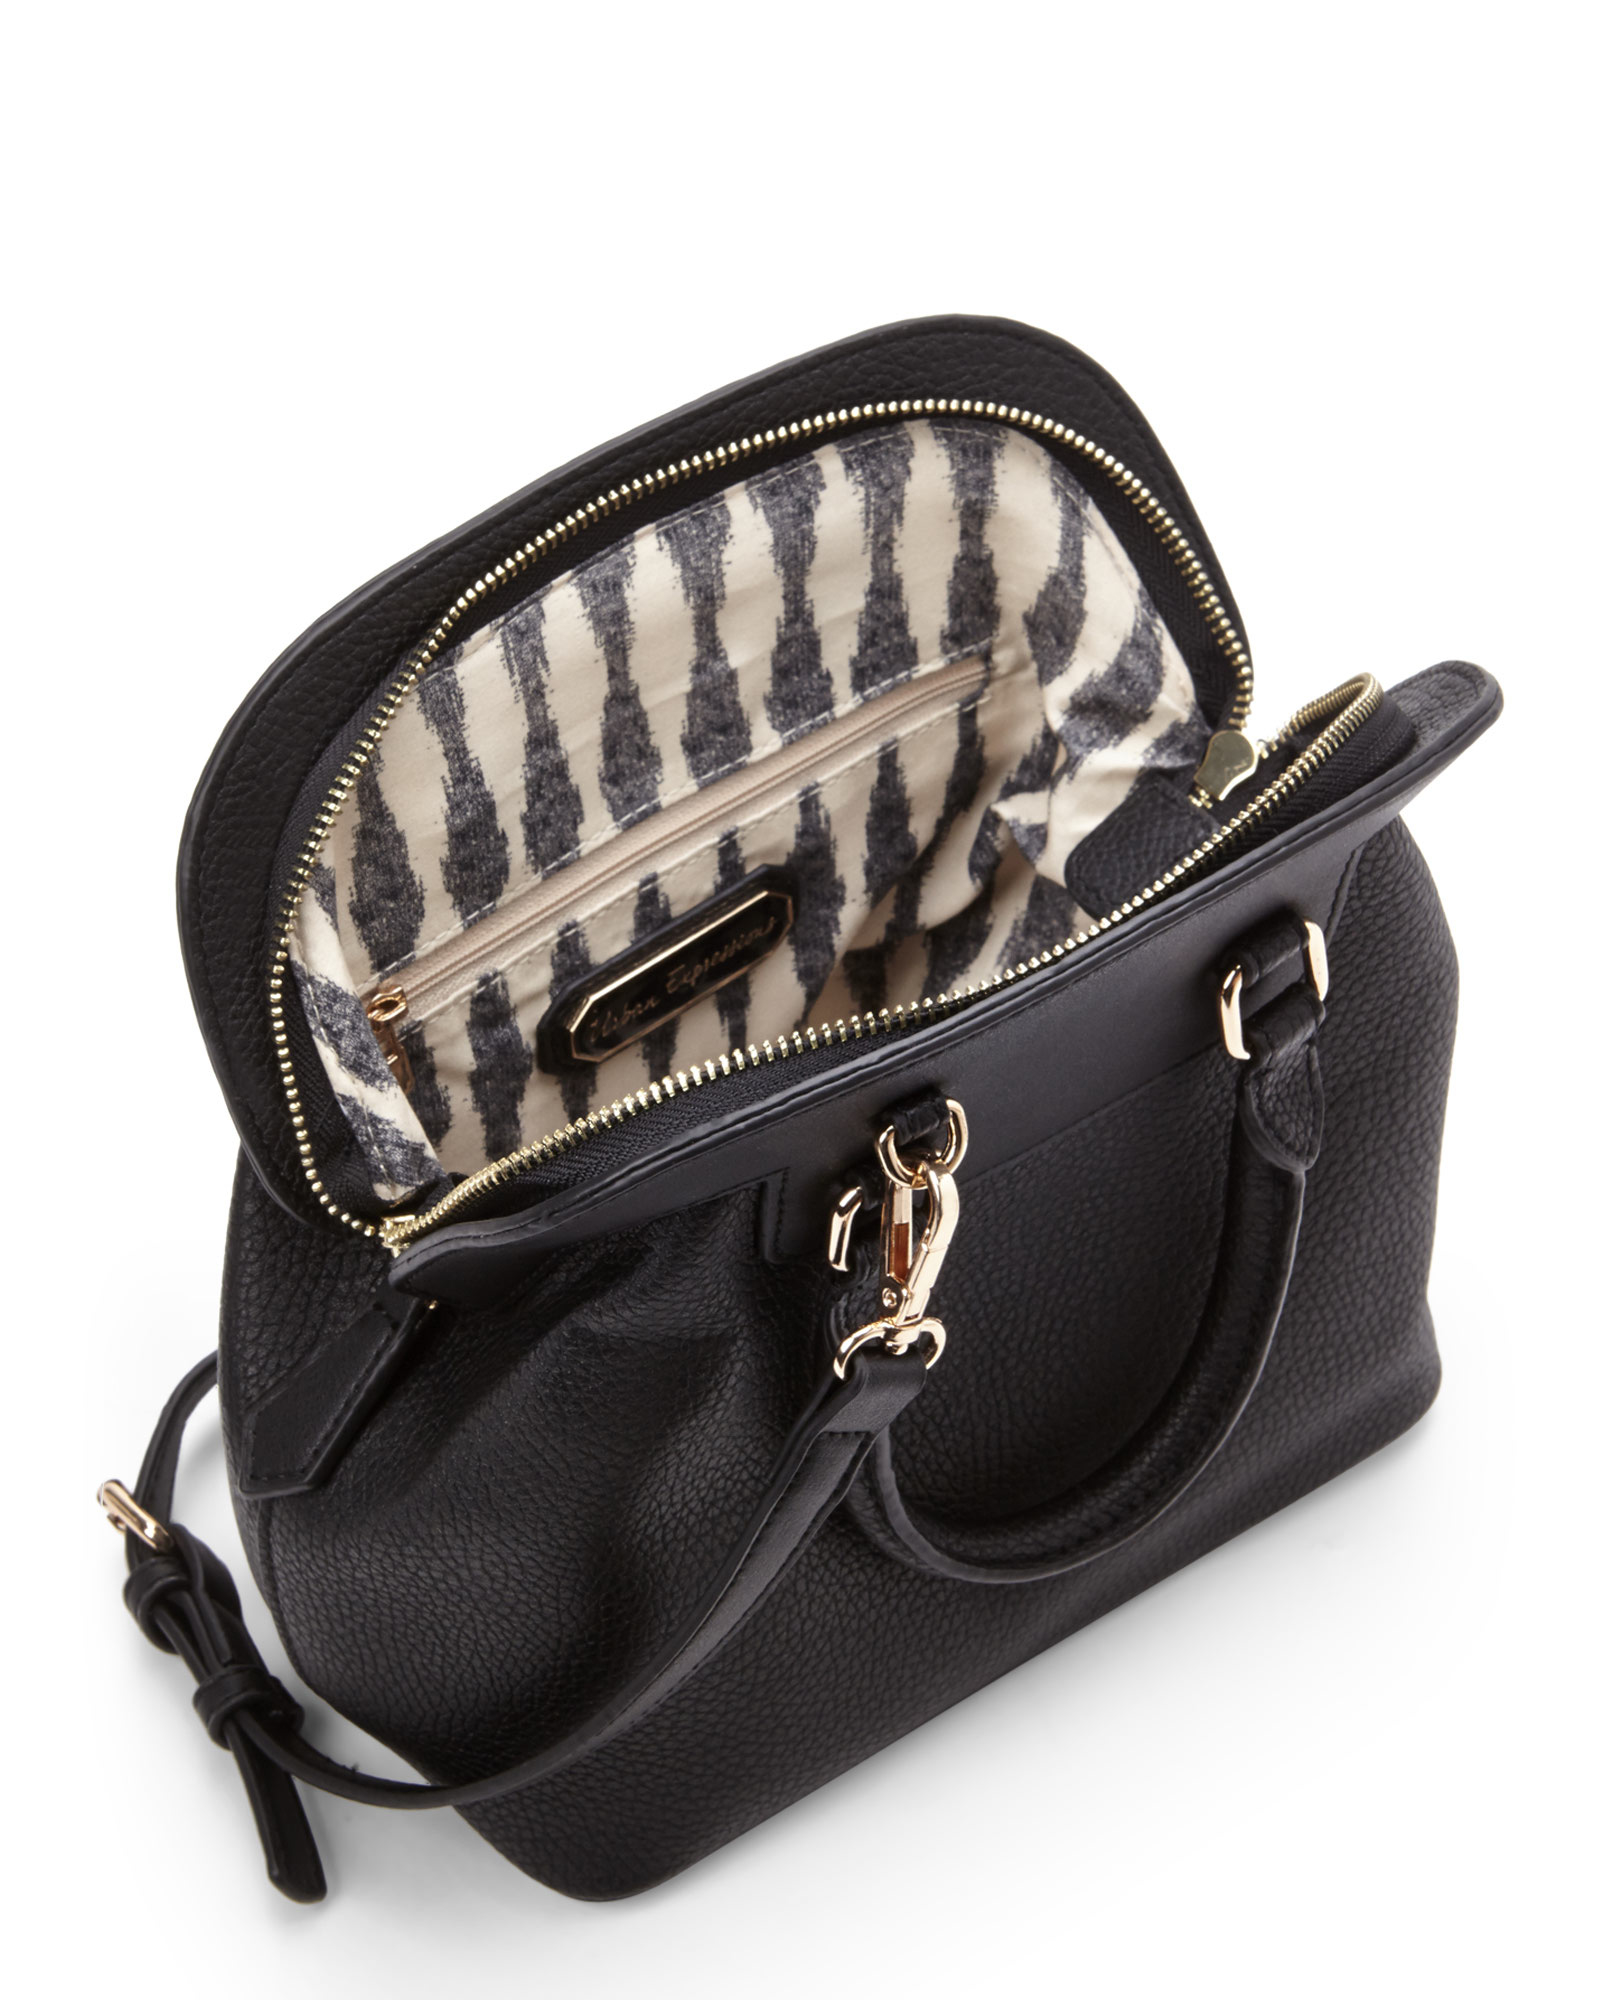 b0e7ccdfe9 Lyst - Urban Expressions Black Camerla Mini Top Handle Bag in Black